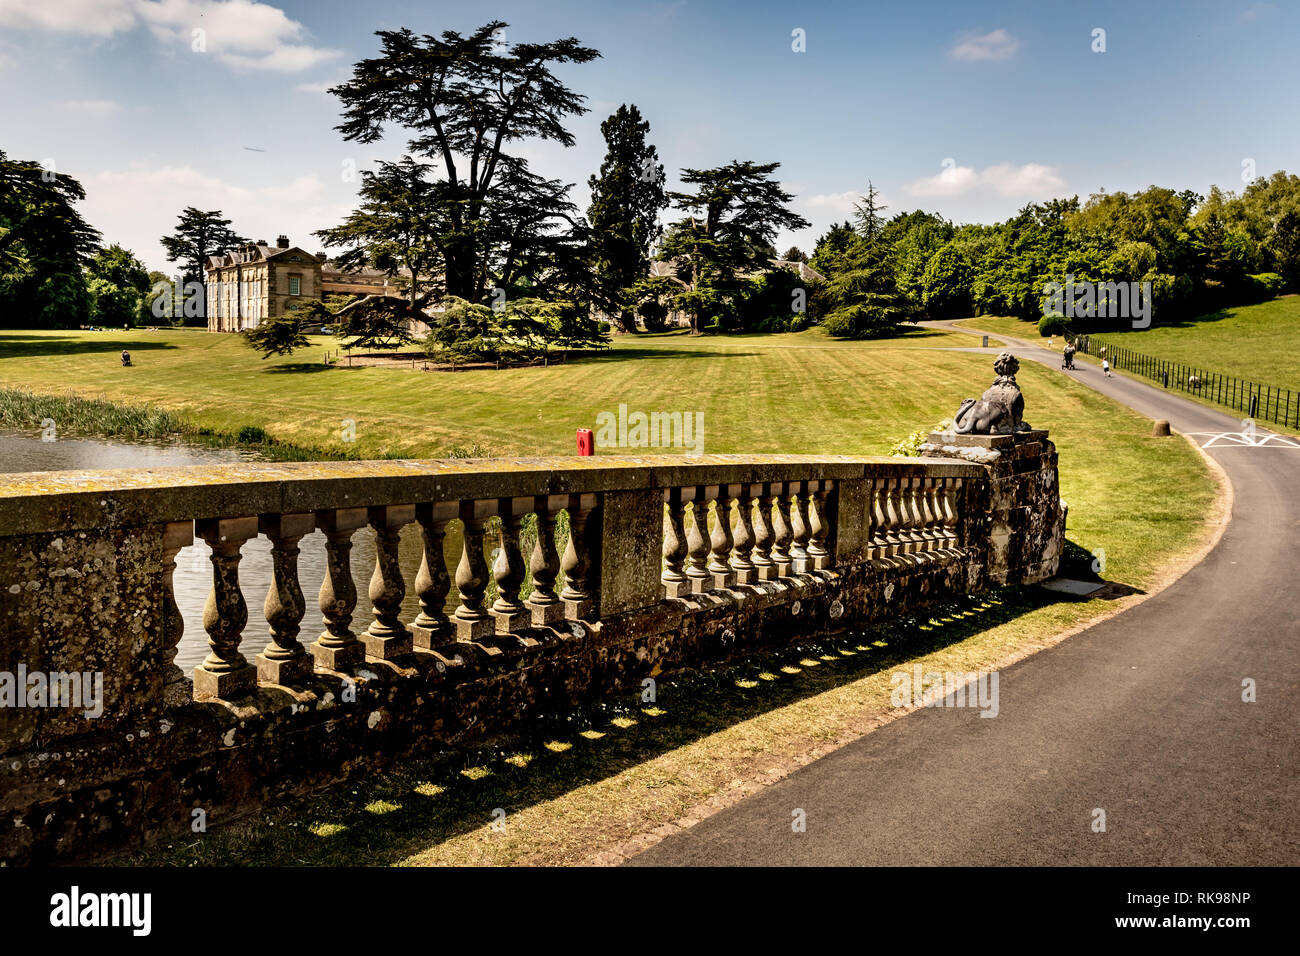 Compton Verney House  is an 18th-century country mansion at Compton Verney in Warwickshire, England. The gardens were landscaped by Capability Brown. - Stock Image